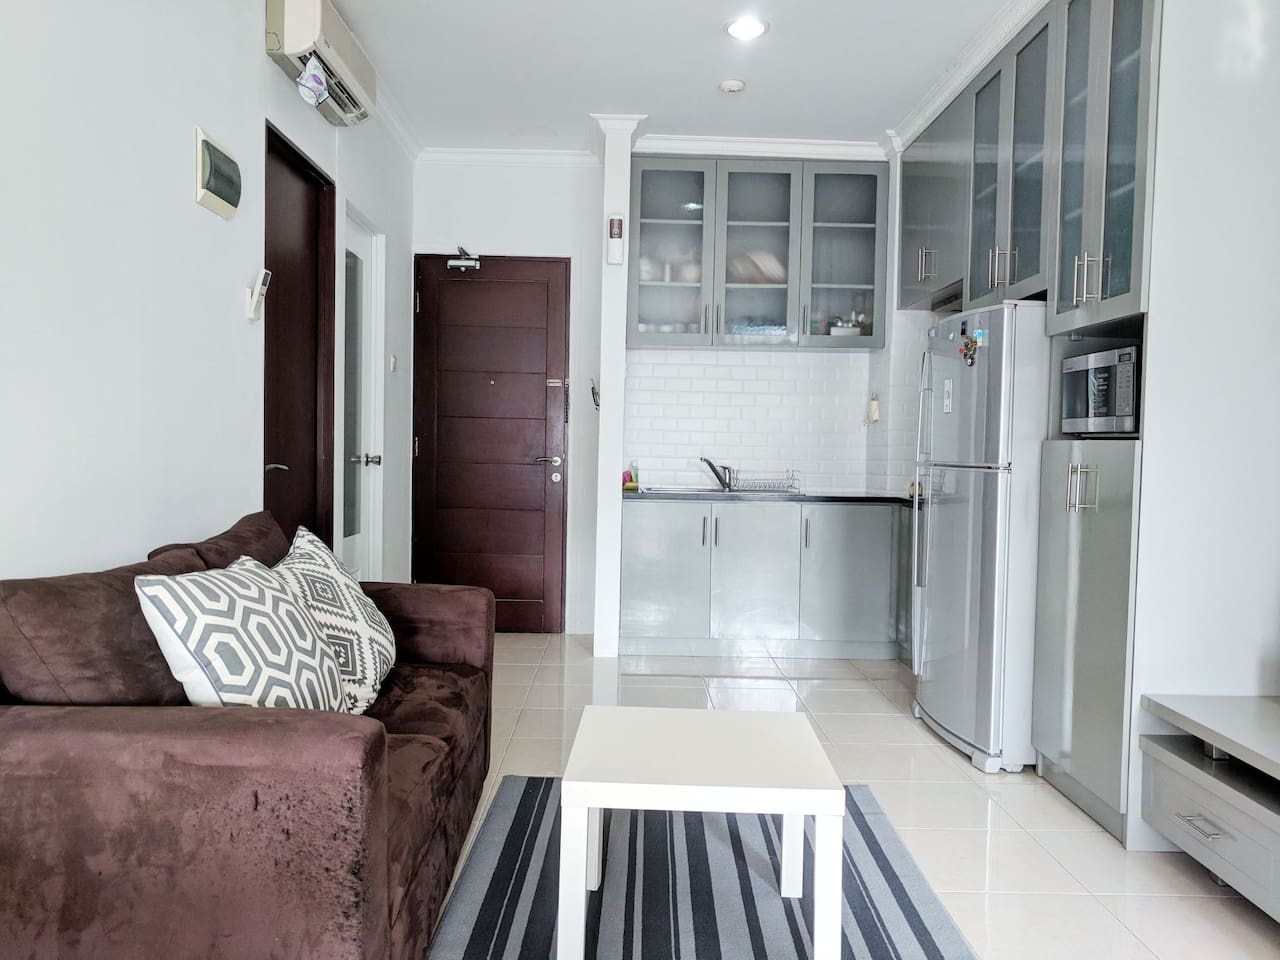 Newly renovated apartment with a complete kitchen for cooking!